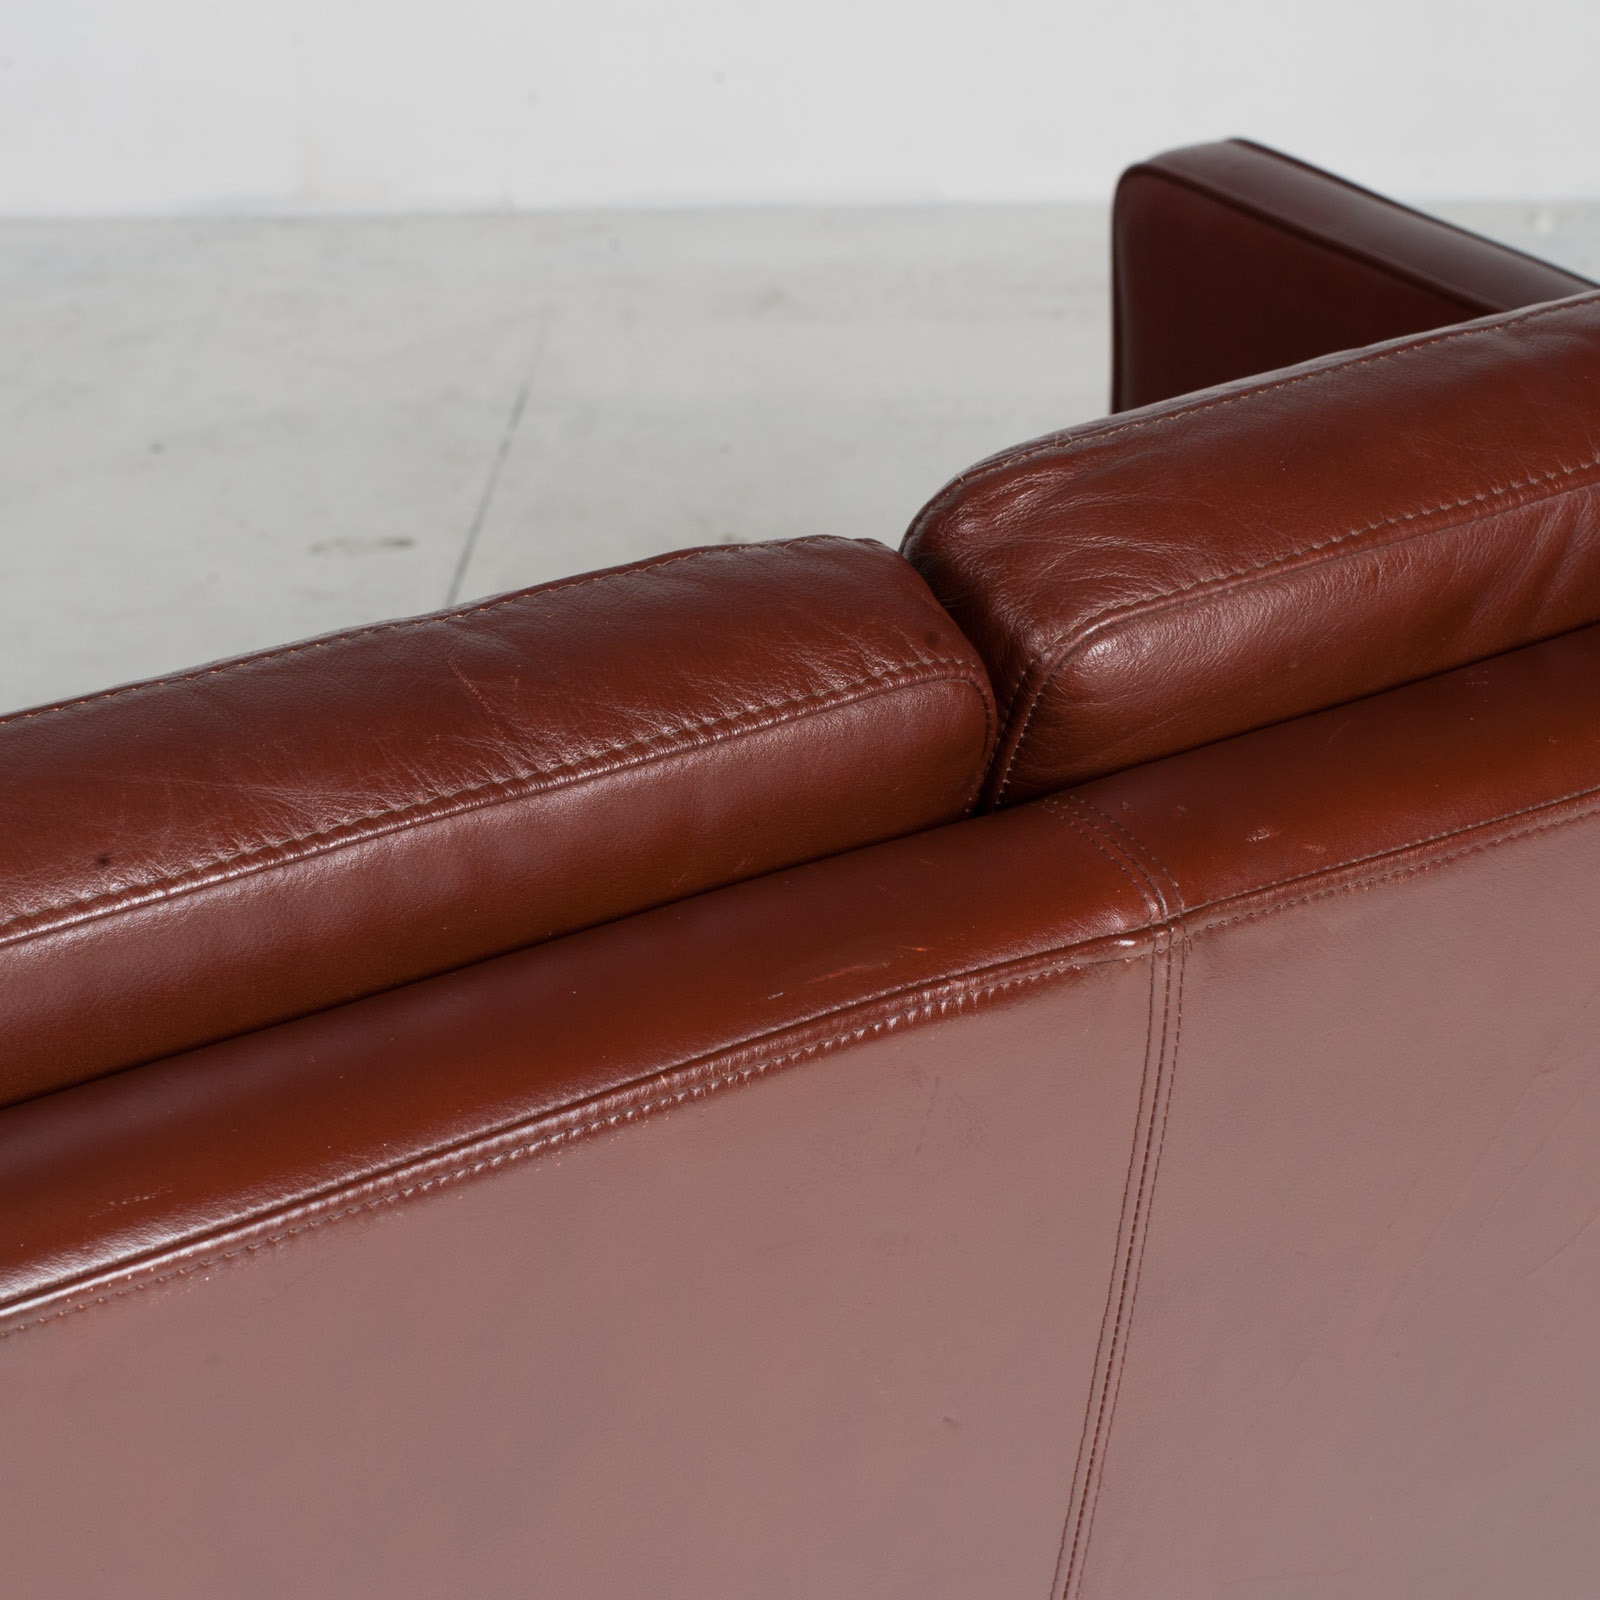 3 Seater Sofa In Tan Leather 1960s Denmark19